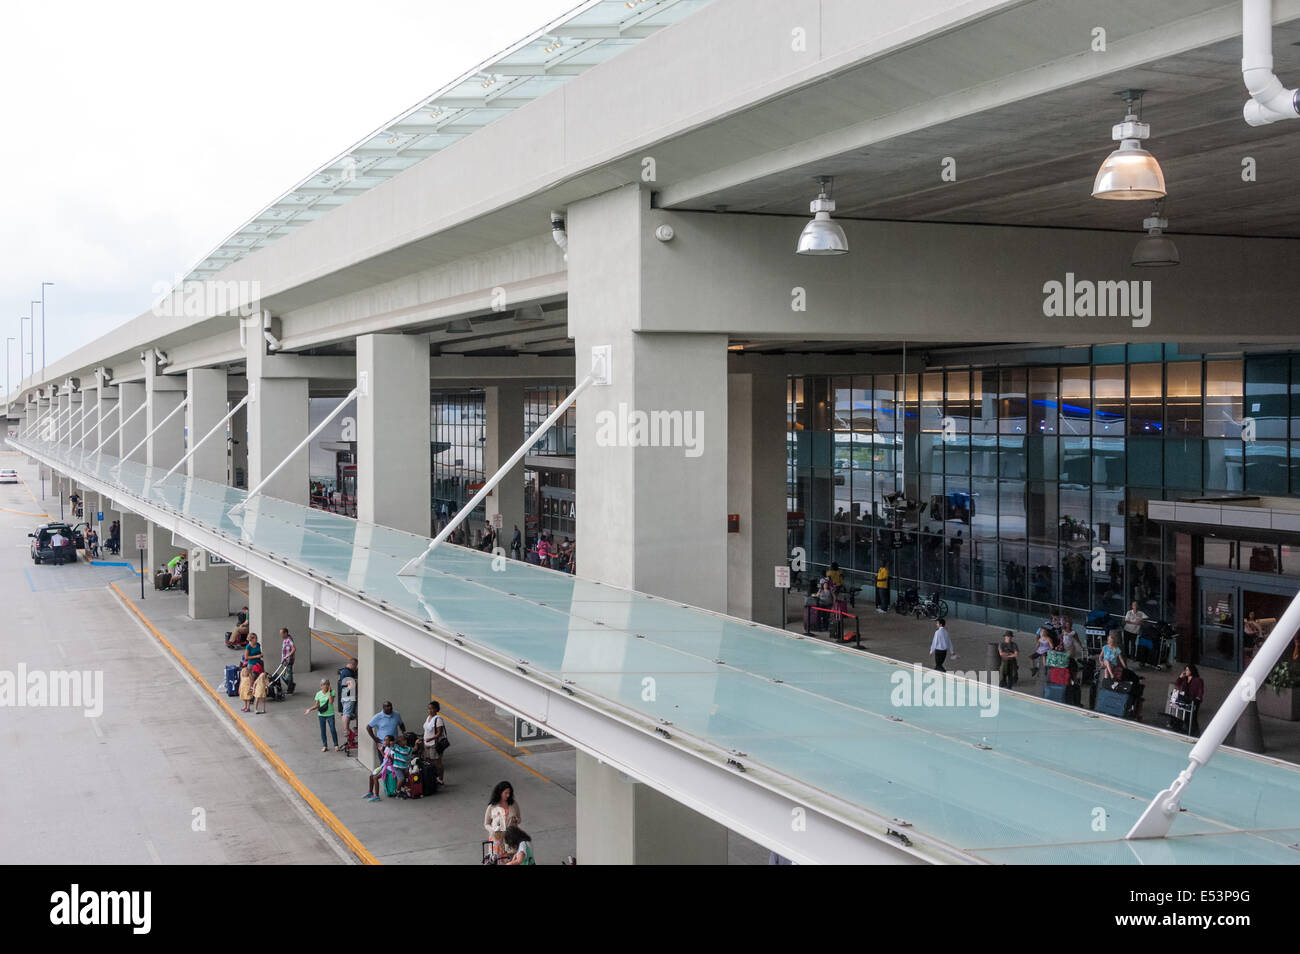 Airline passengers arriving and departing at the International Terminal of Atlanta's Hartsfield-Jackson Airport. - Stock Image